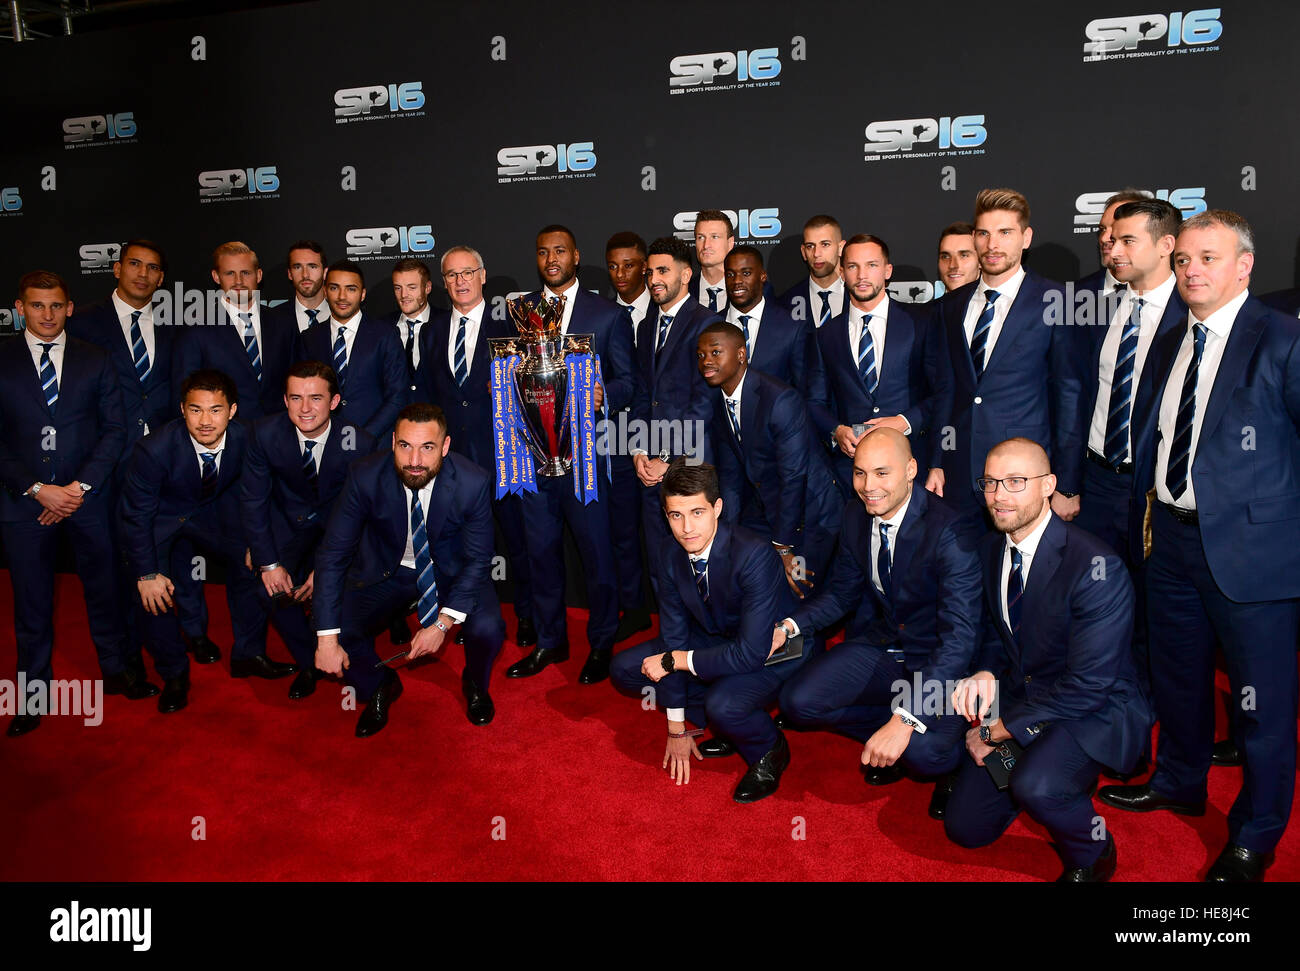 Leicester City football club with the Premier League trophy during the red carpet arrivals for BBC Sports Personality - Stock Image